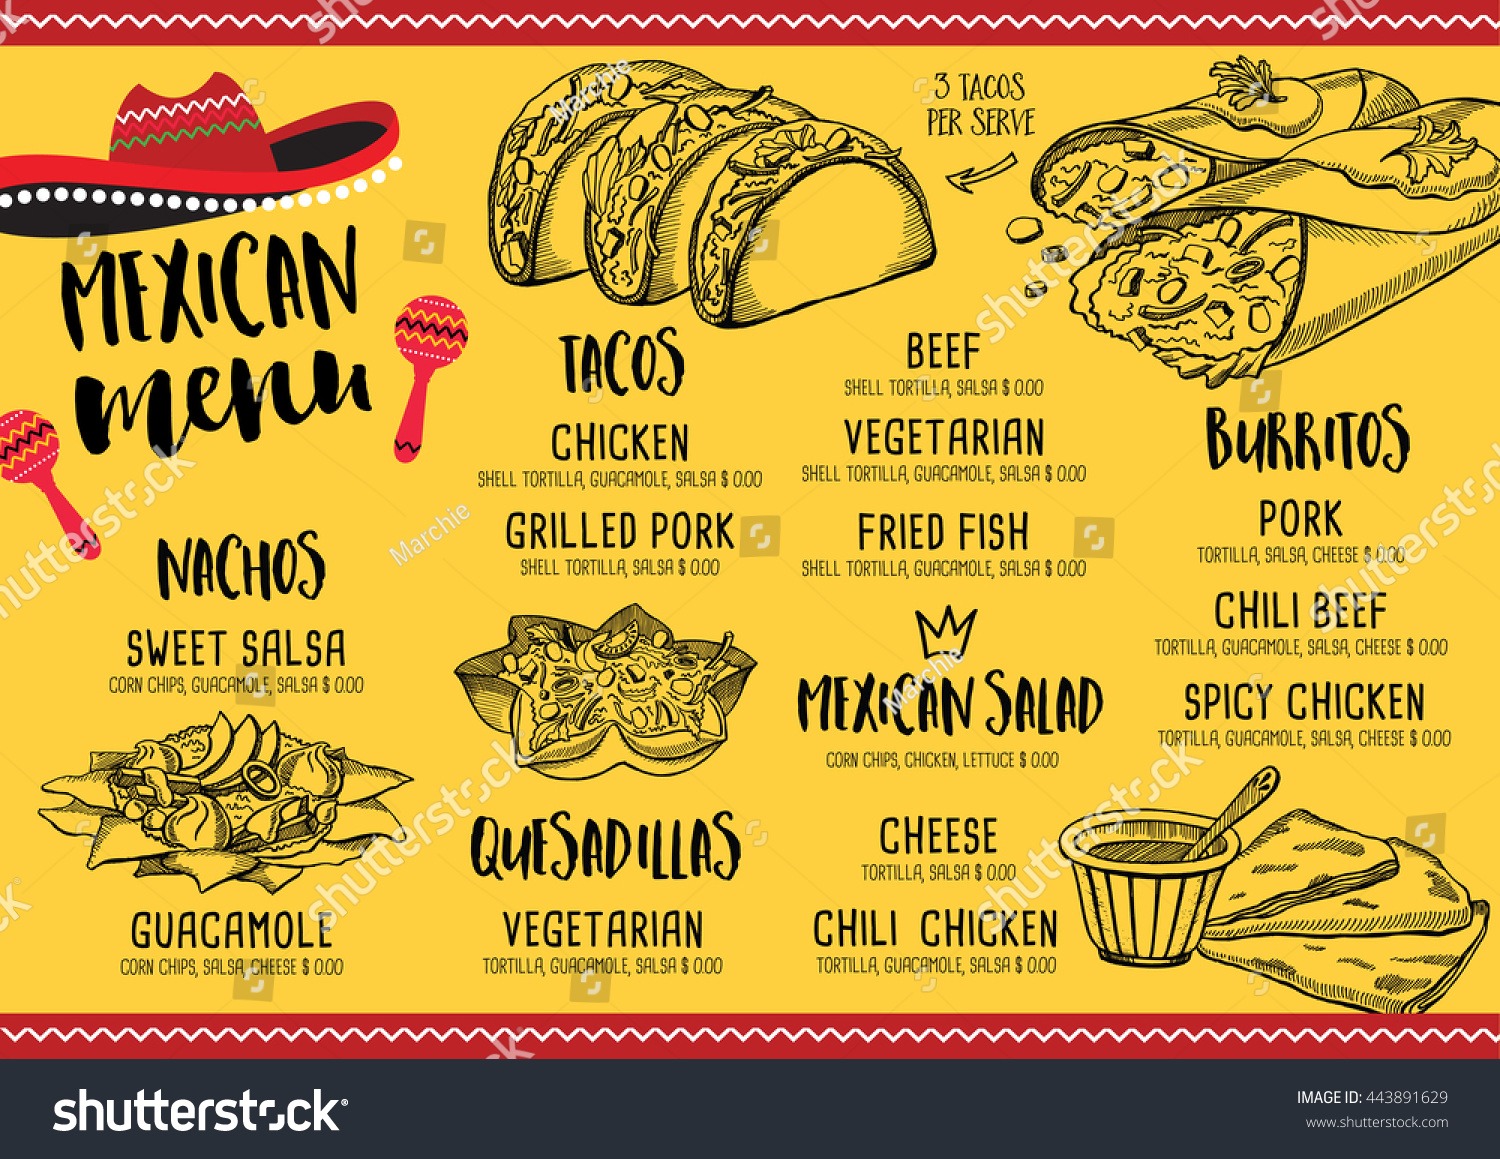 Mexican Menu Placemat Food Restaurant Menu Stock Vector Royalty